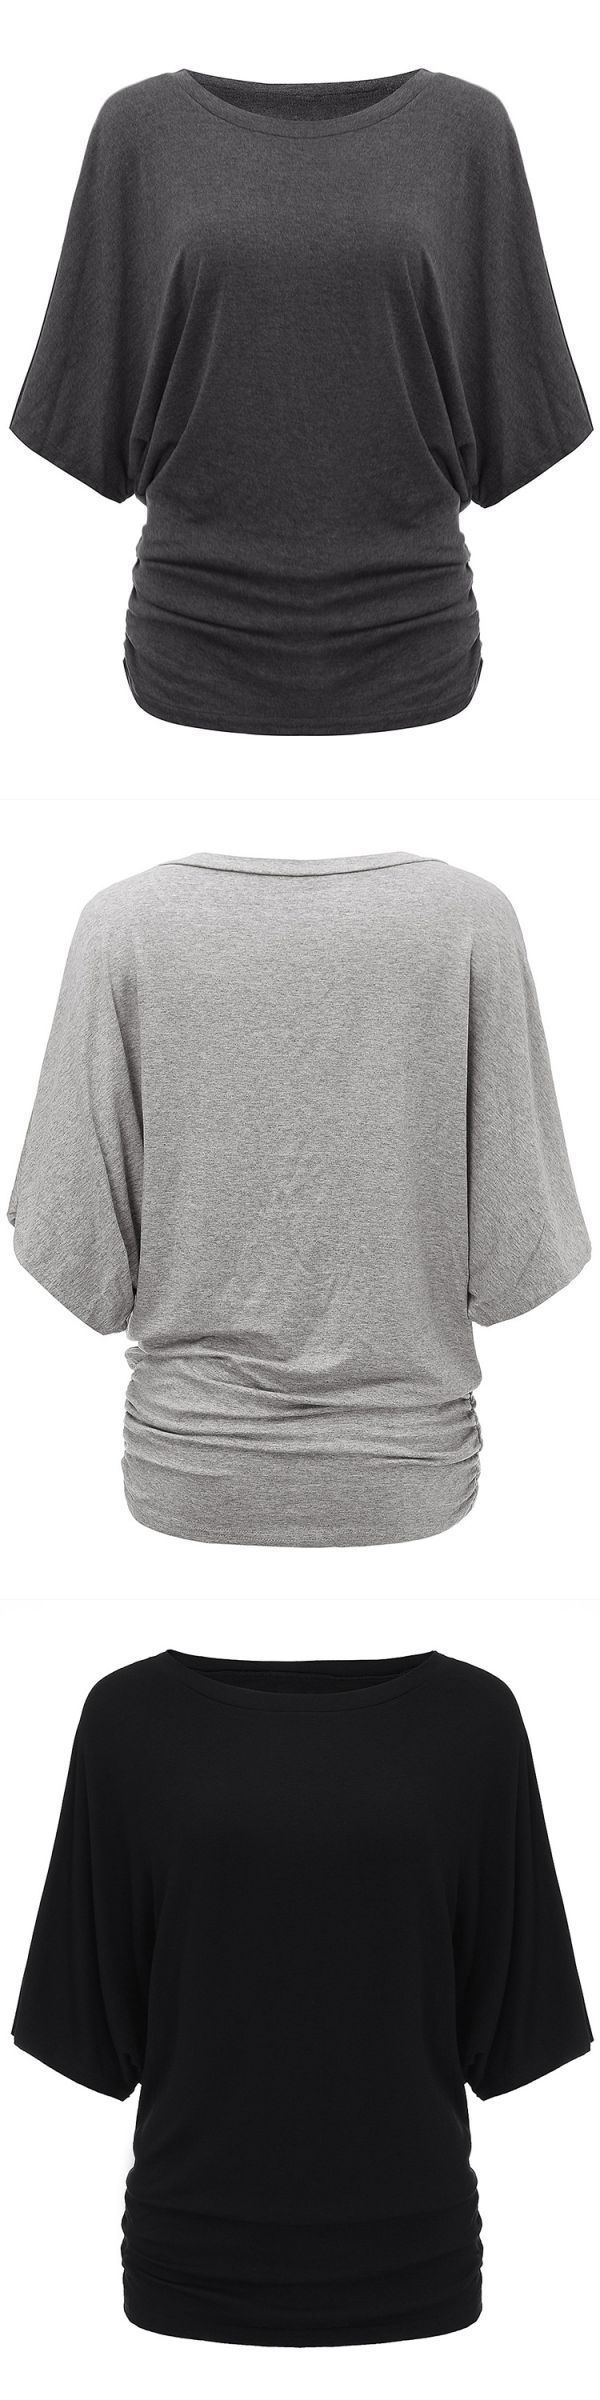 Fitted t shirts women#8217;s women solid o-neck batwing short sleeve casual loose t-shirt #t #shirt #this #girl #needs #a #beer #t #shirts #for #girl #scouts #womens #1/2 #sleeve #t #shirts #womens #halloween #t #shirts